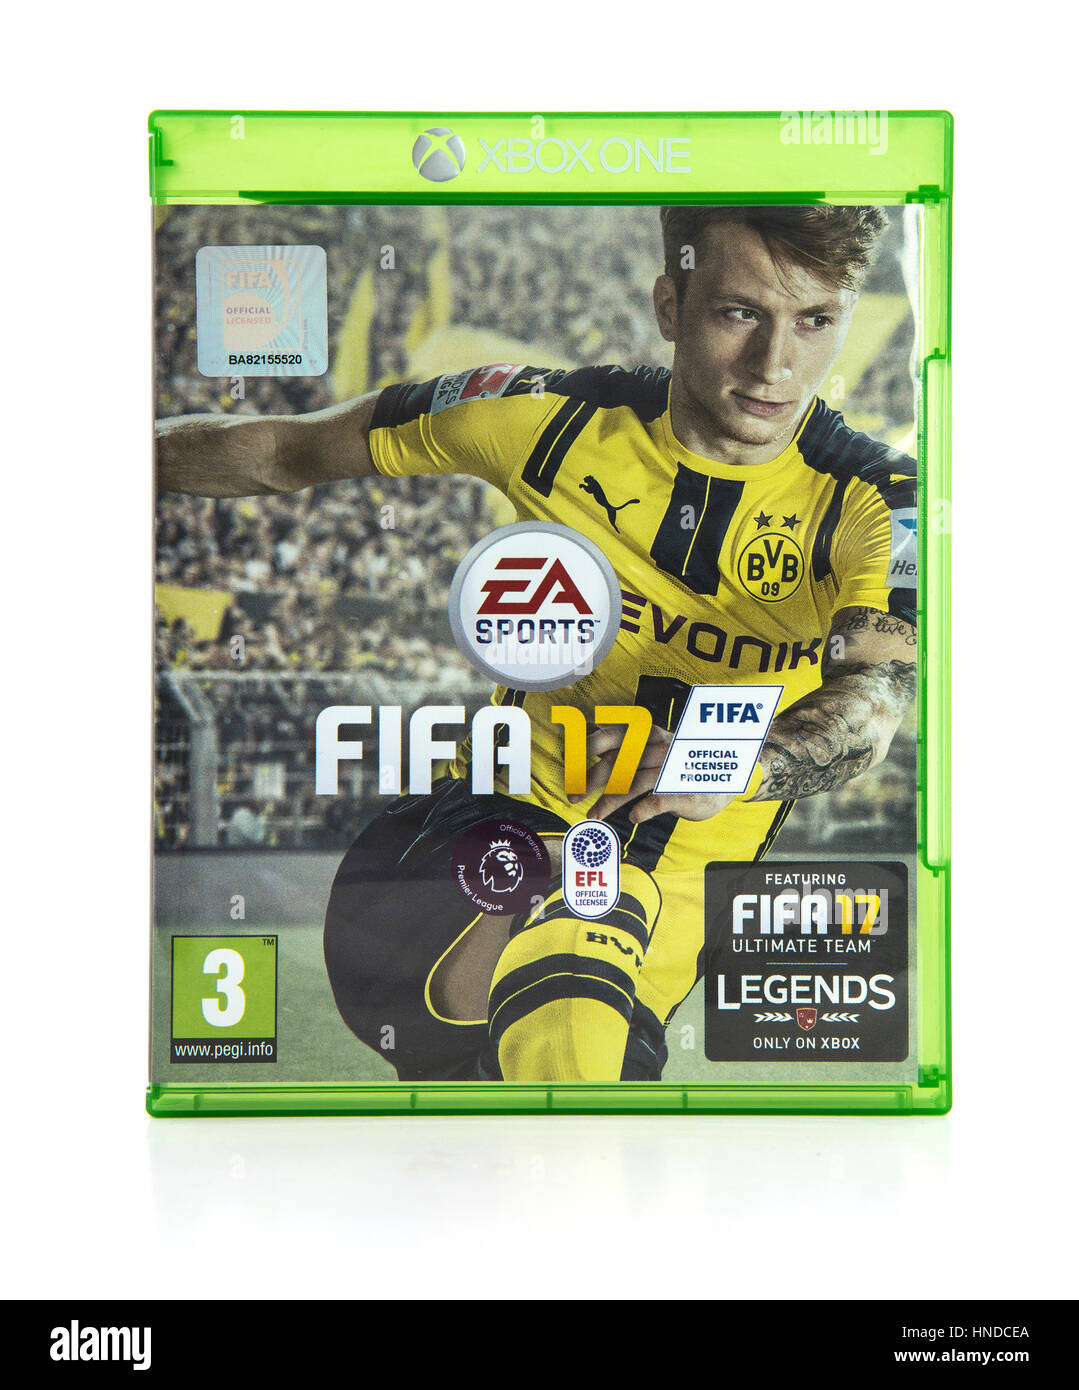 FIFA 17 for the Xbox 260, FIFA 17 is a very popular Football game from EA Sports. - Stock Image